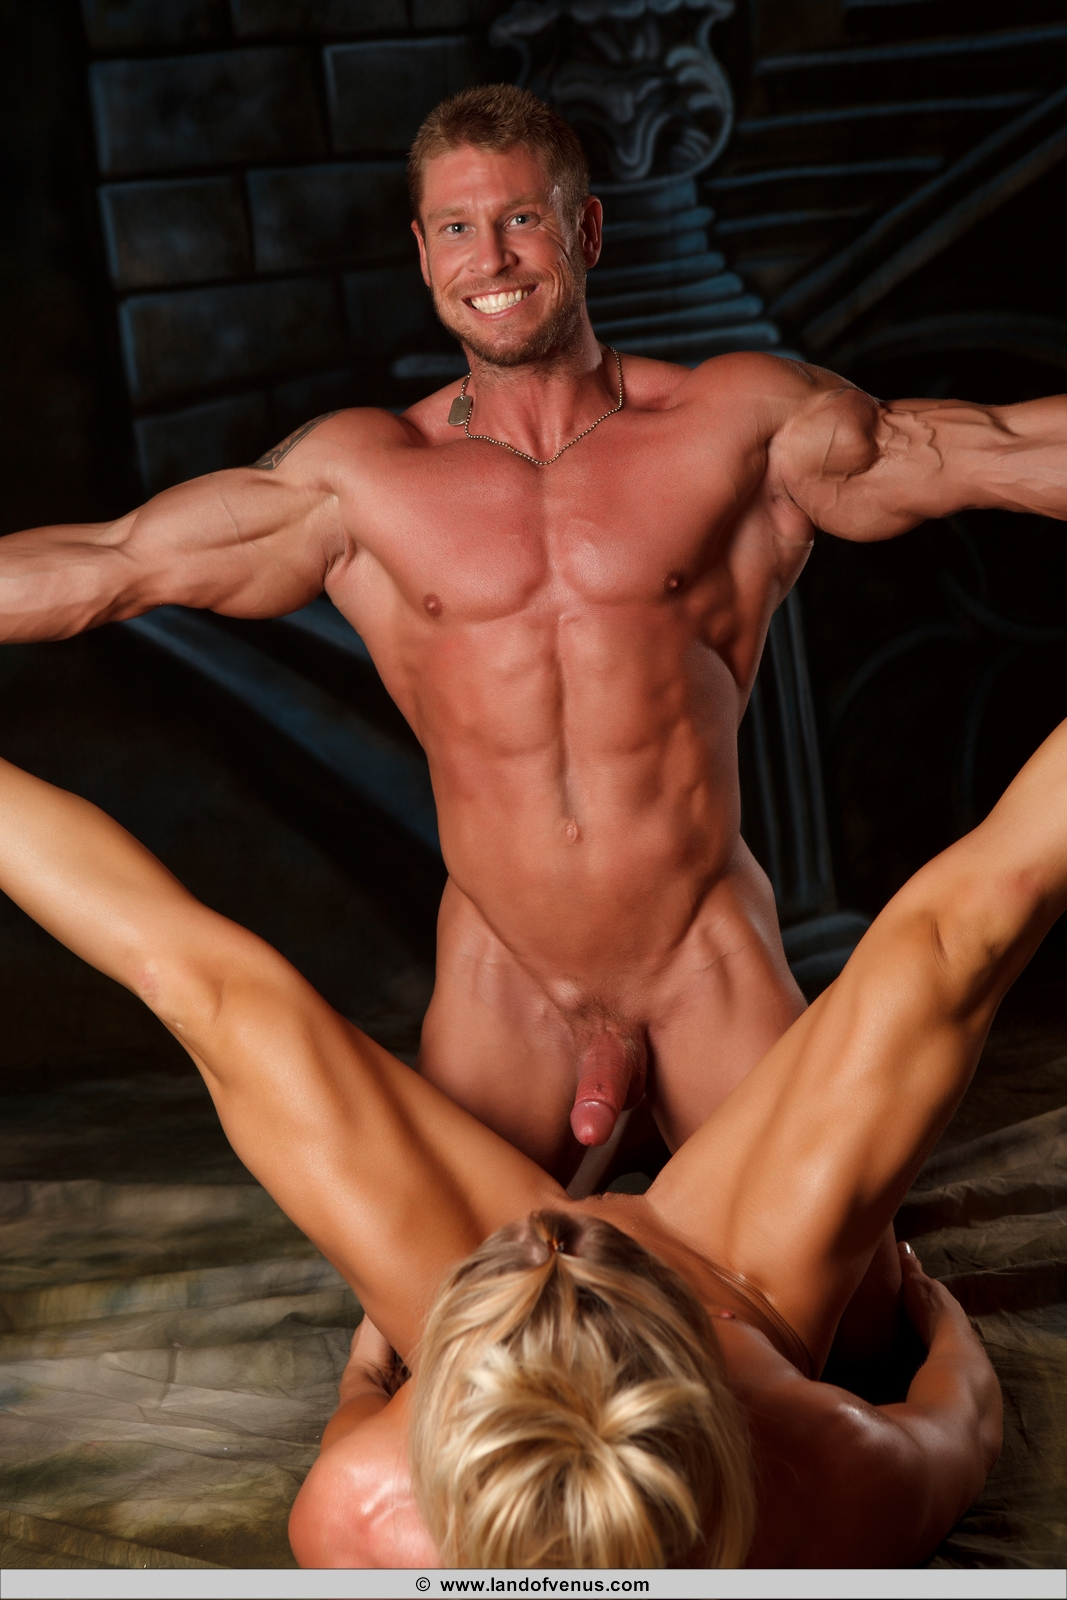 Bodybuilder having sex